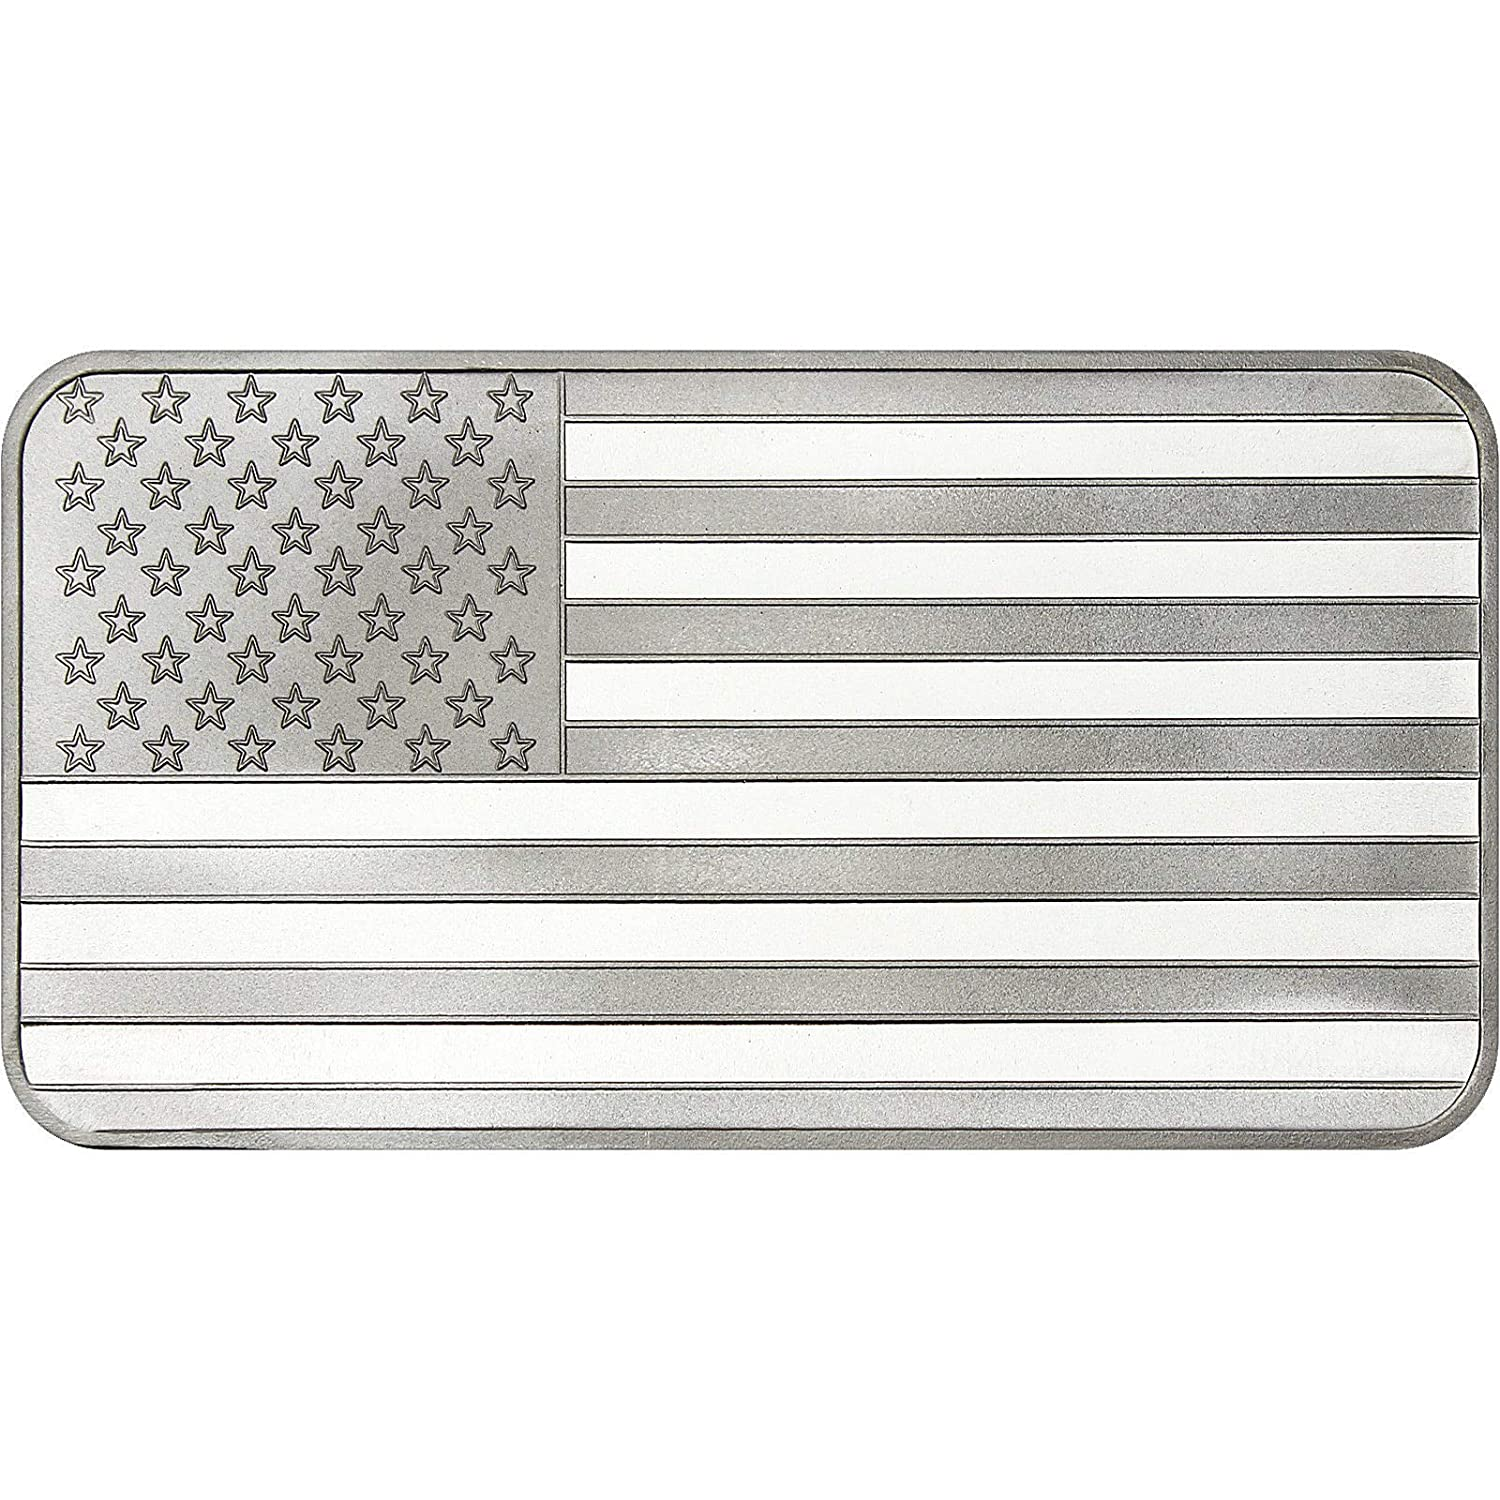 Flag Silver Bullion 1 Ounce .999 Fine Silver Bars Flag Silver Bullion 1 Ounce .999 Fine Silver Bars SILVERTOWNE